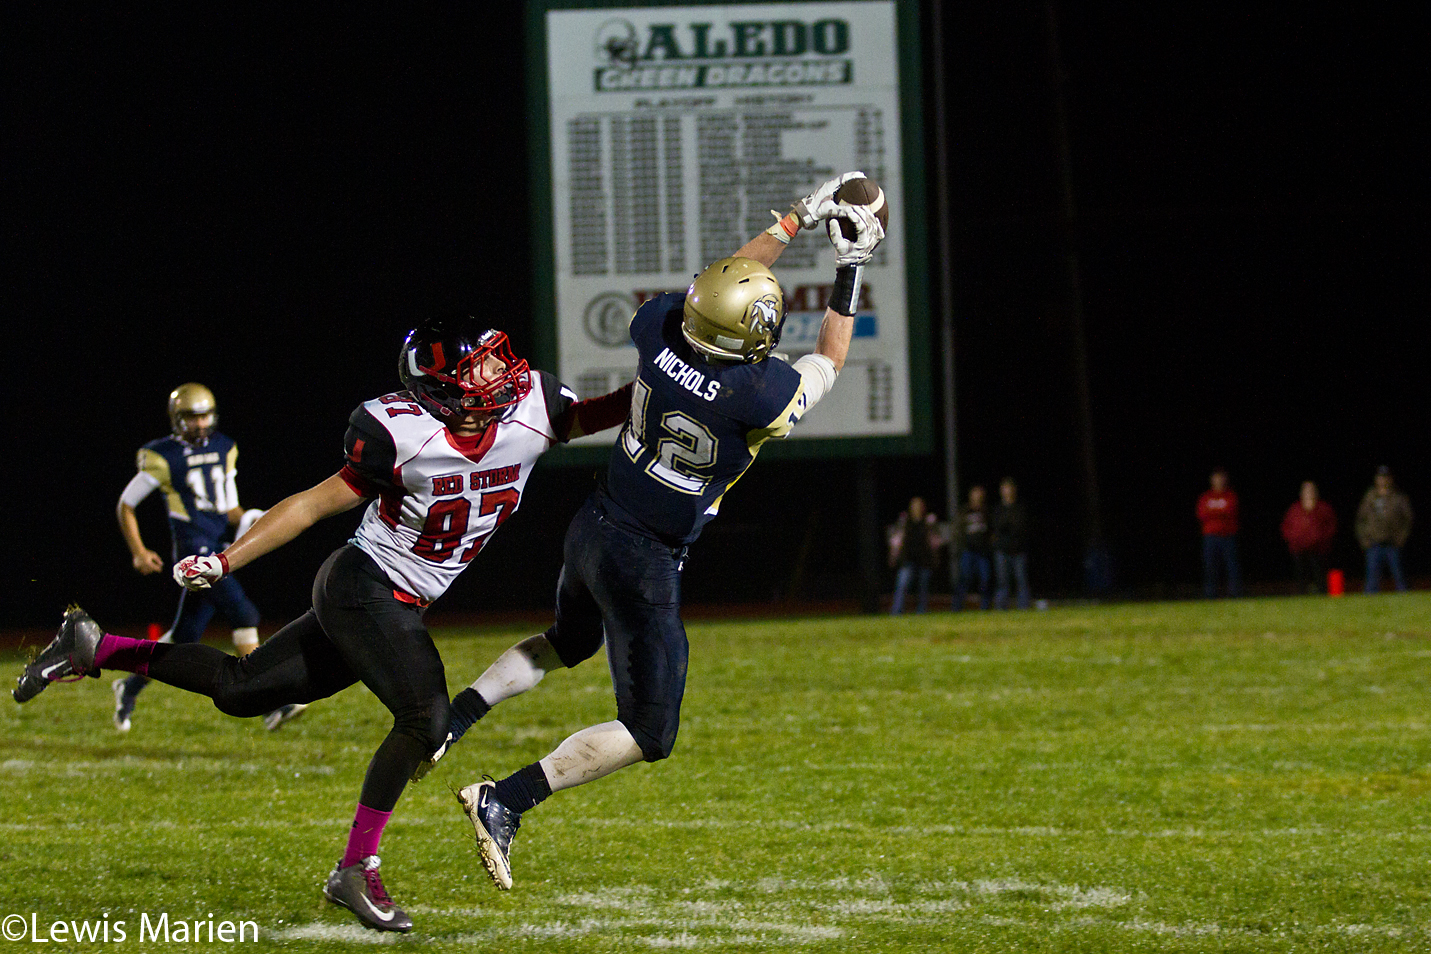 Mercer County's Ben Nichols (12) makes a leaping catch over a United's Derek Hart (87)during a game Oct. 23 at George Pratt Memorial Field in Aledo, Ill. The Golden Eagles beat the Red Storm 27-0.